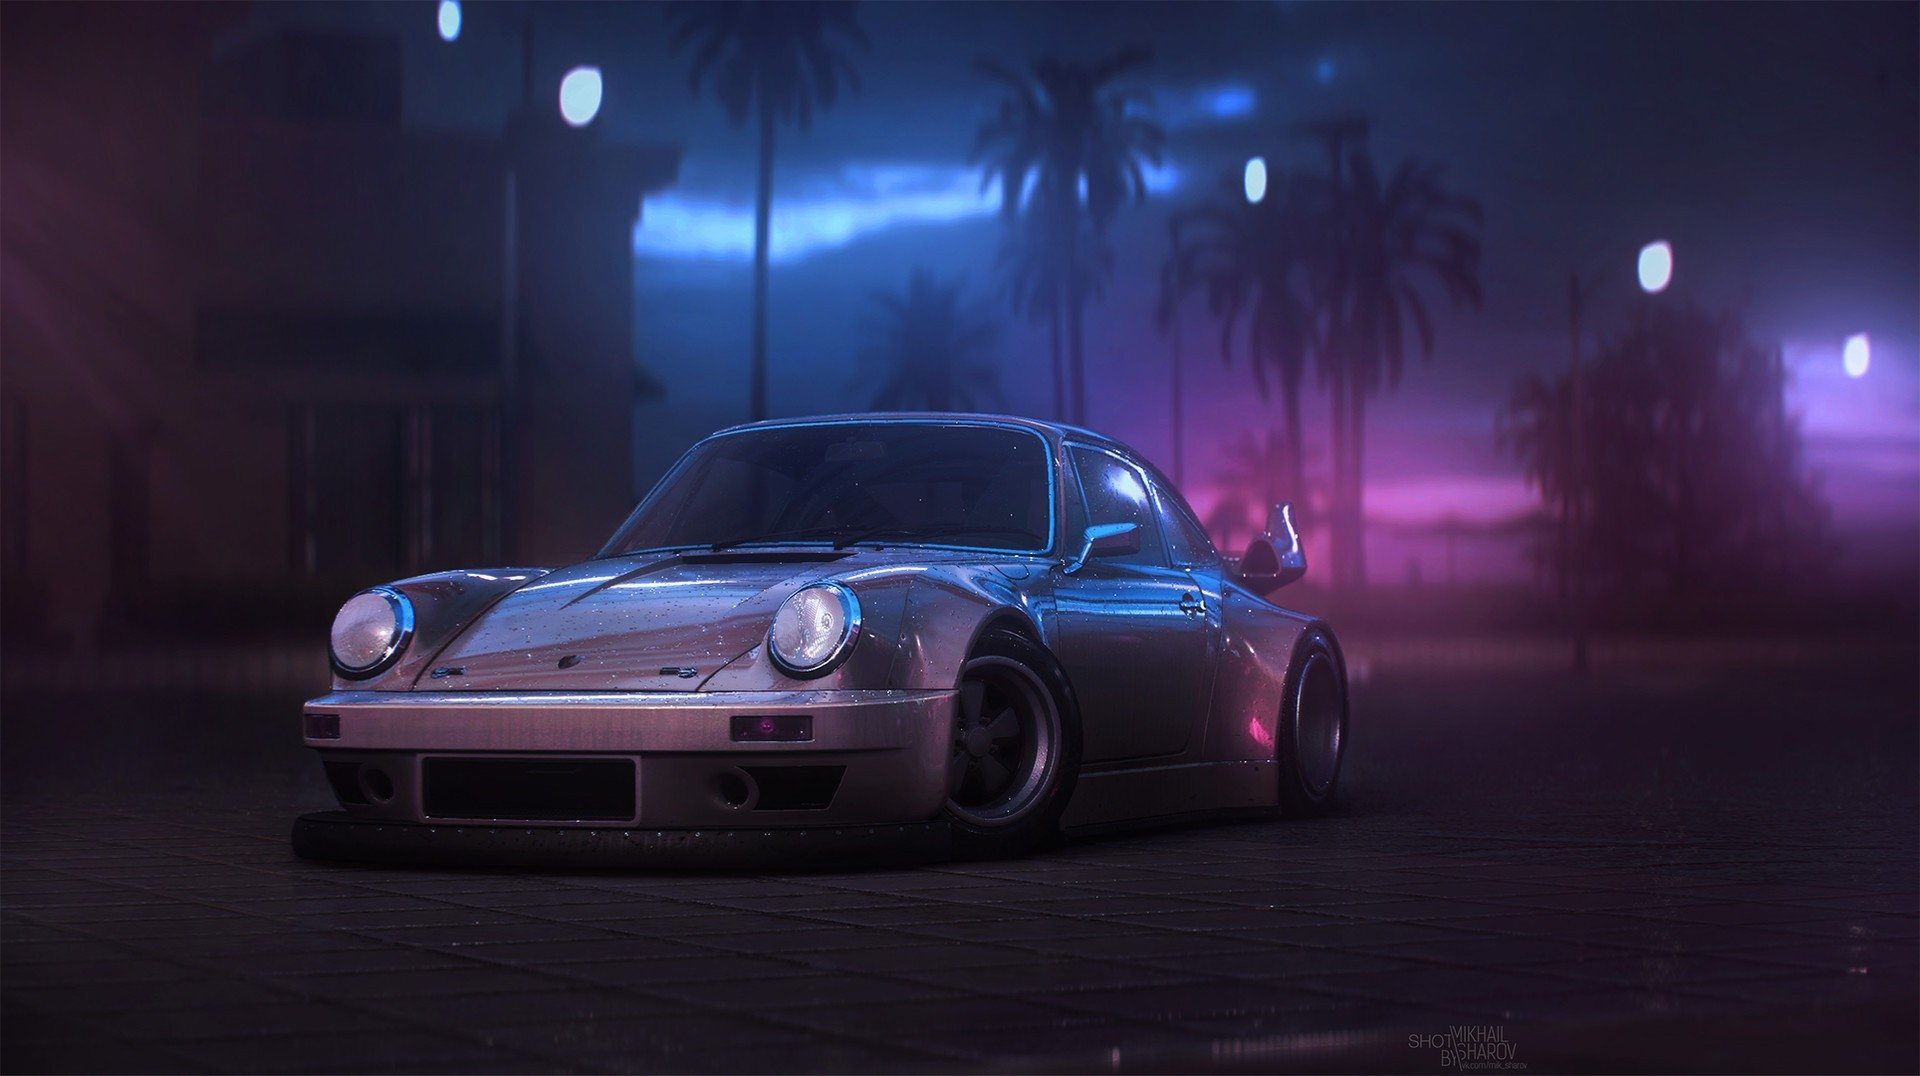 Porsche 911 Wallpaper And Background Image 1920x1076 Id 851550 Wallpaper Abyss